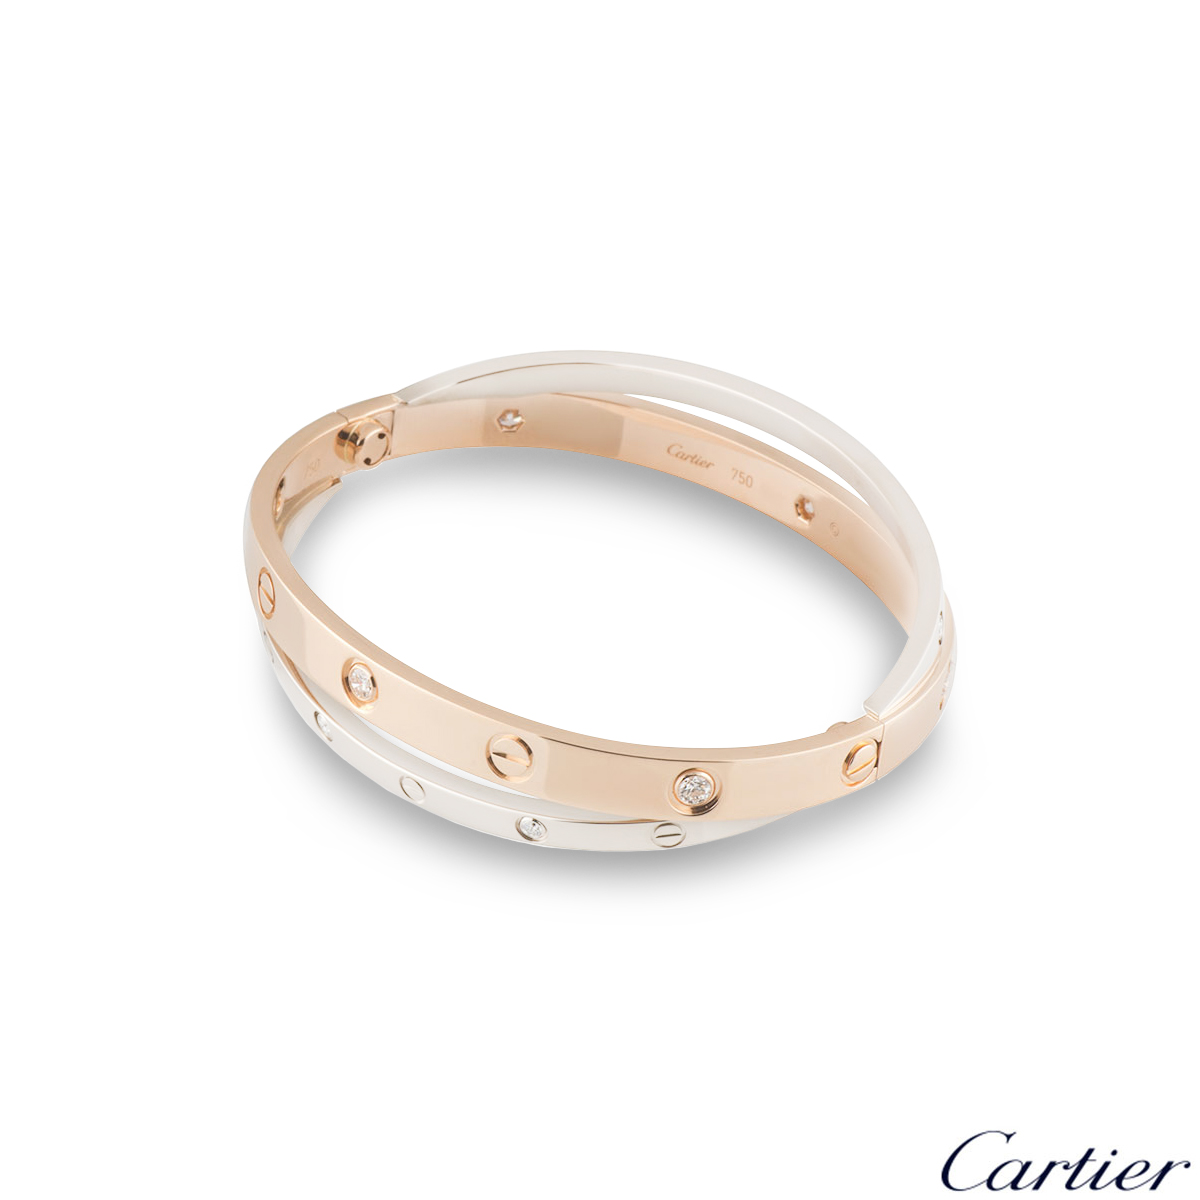 Cartier Love Rose & White Gold Diamond Bracelet Size 16 N6039116